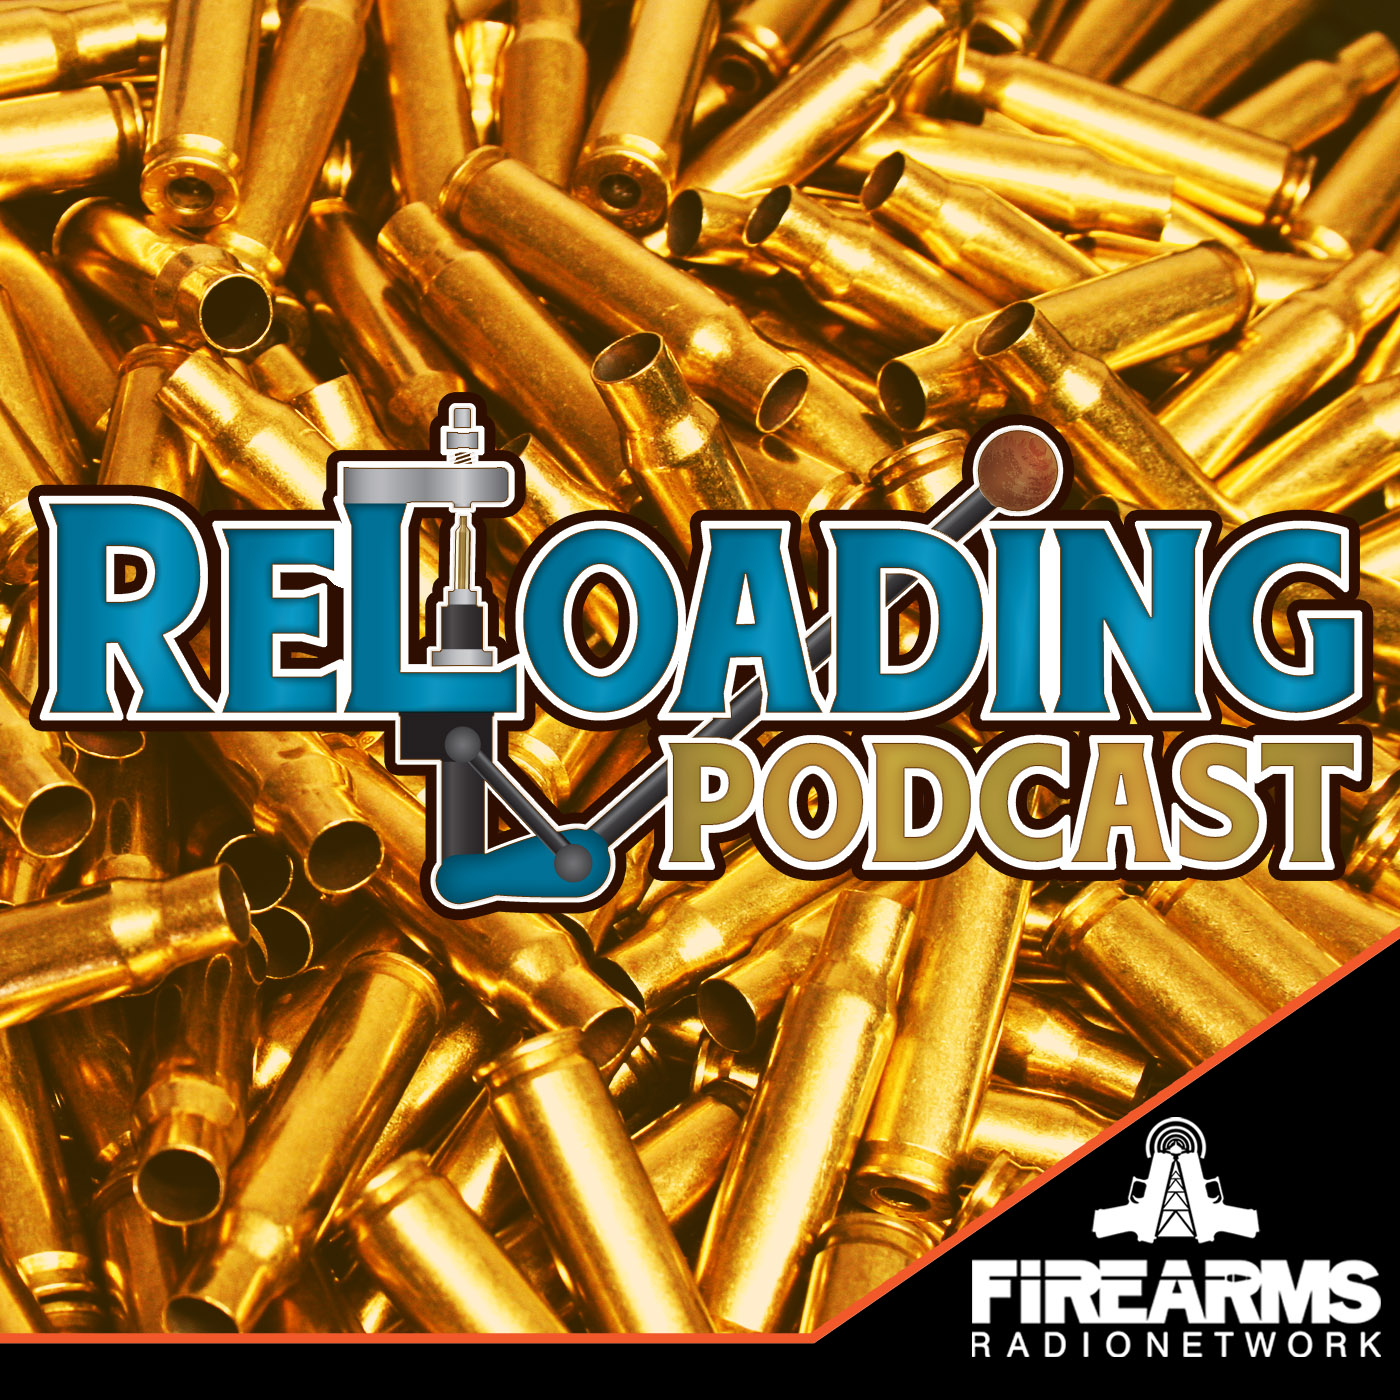 Reloading Podcast — Firearms Radio Network